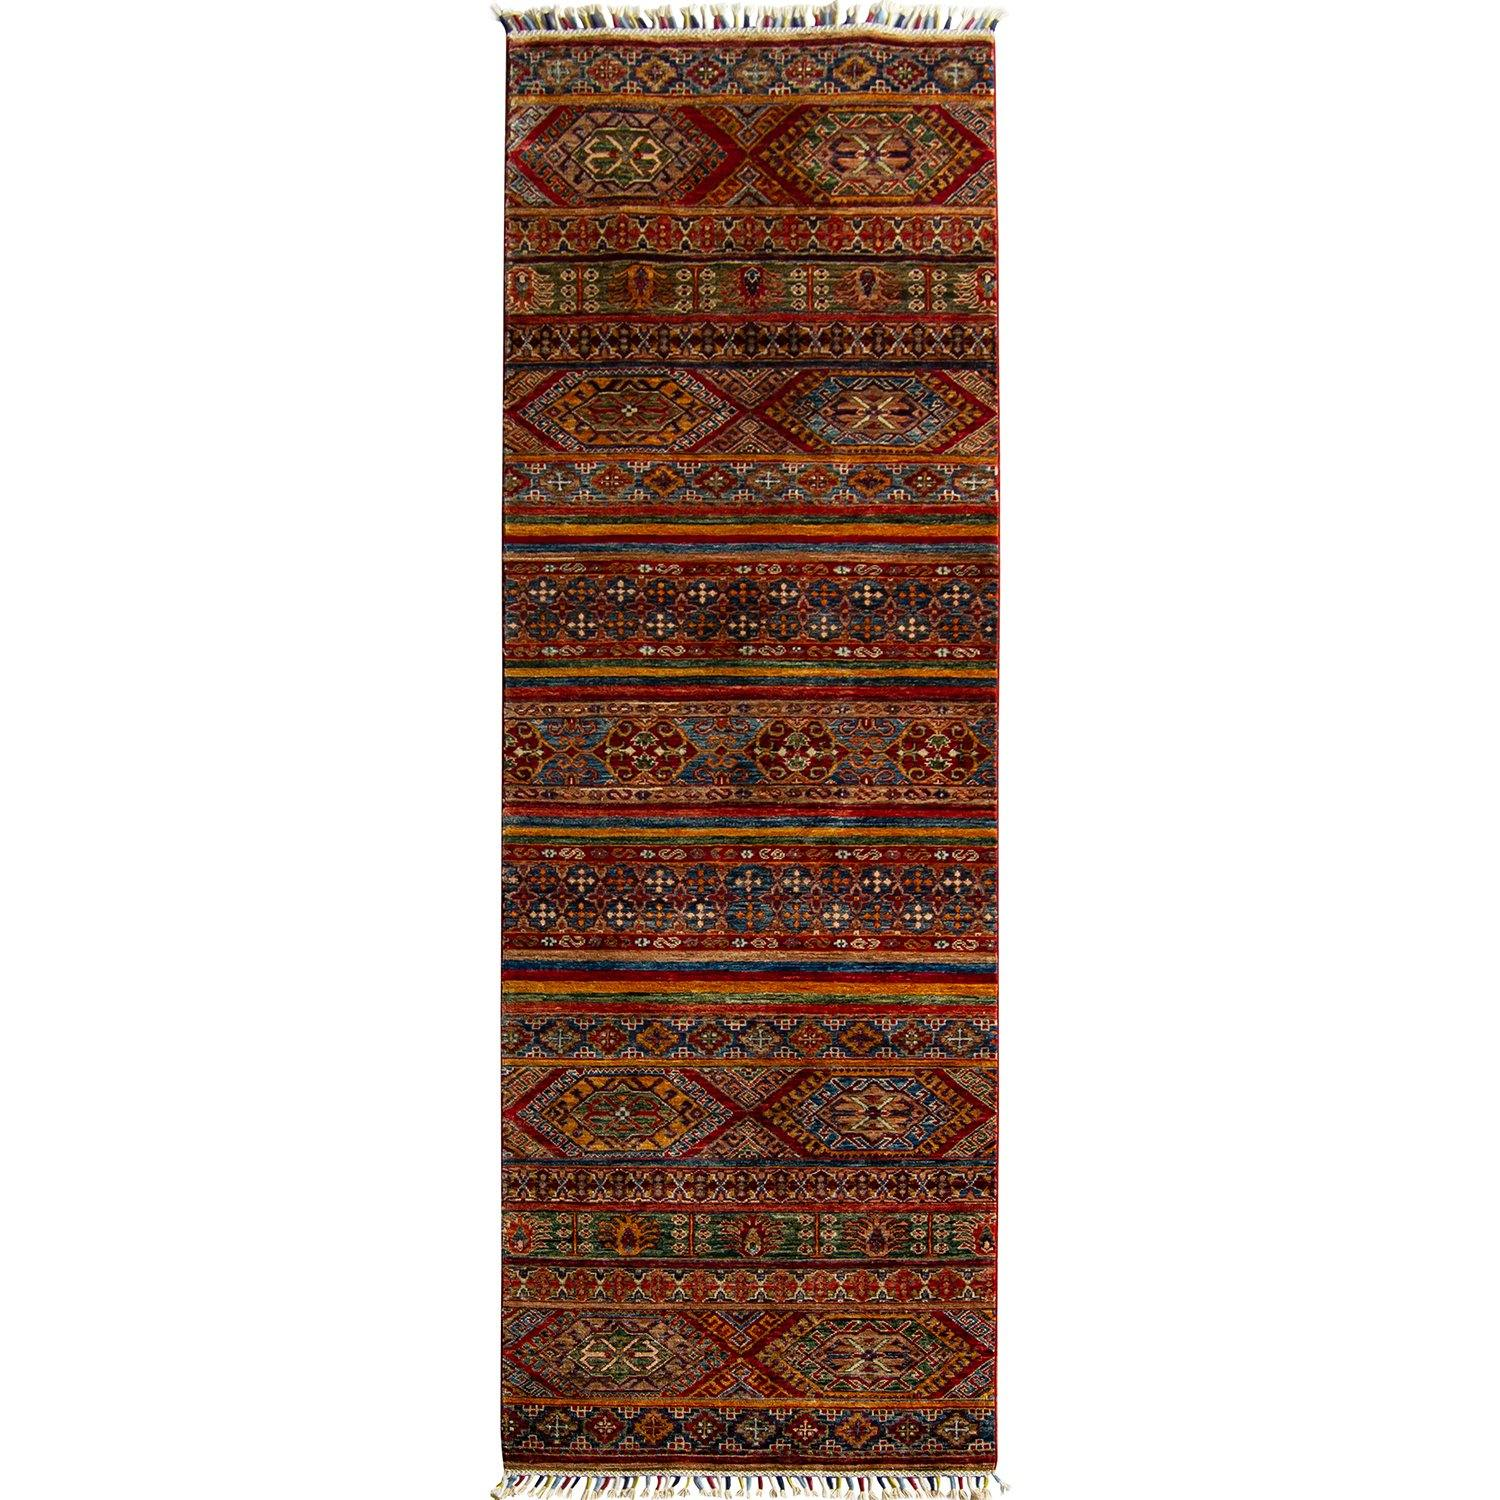 7019WLT11 Persian-Rug | House-of-Haghi | NewMarket | Auckland | NZ | Handmade Persian Rugs | Hand Knotted Persian Rugs